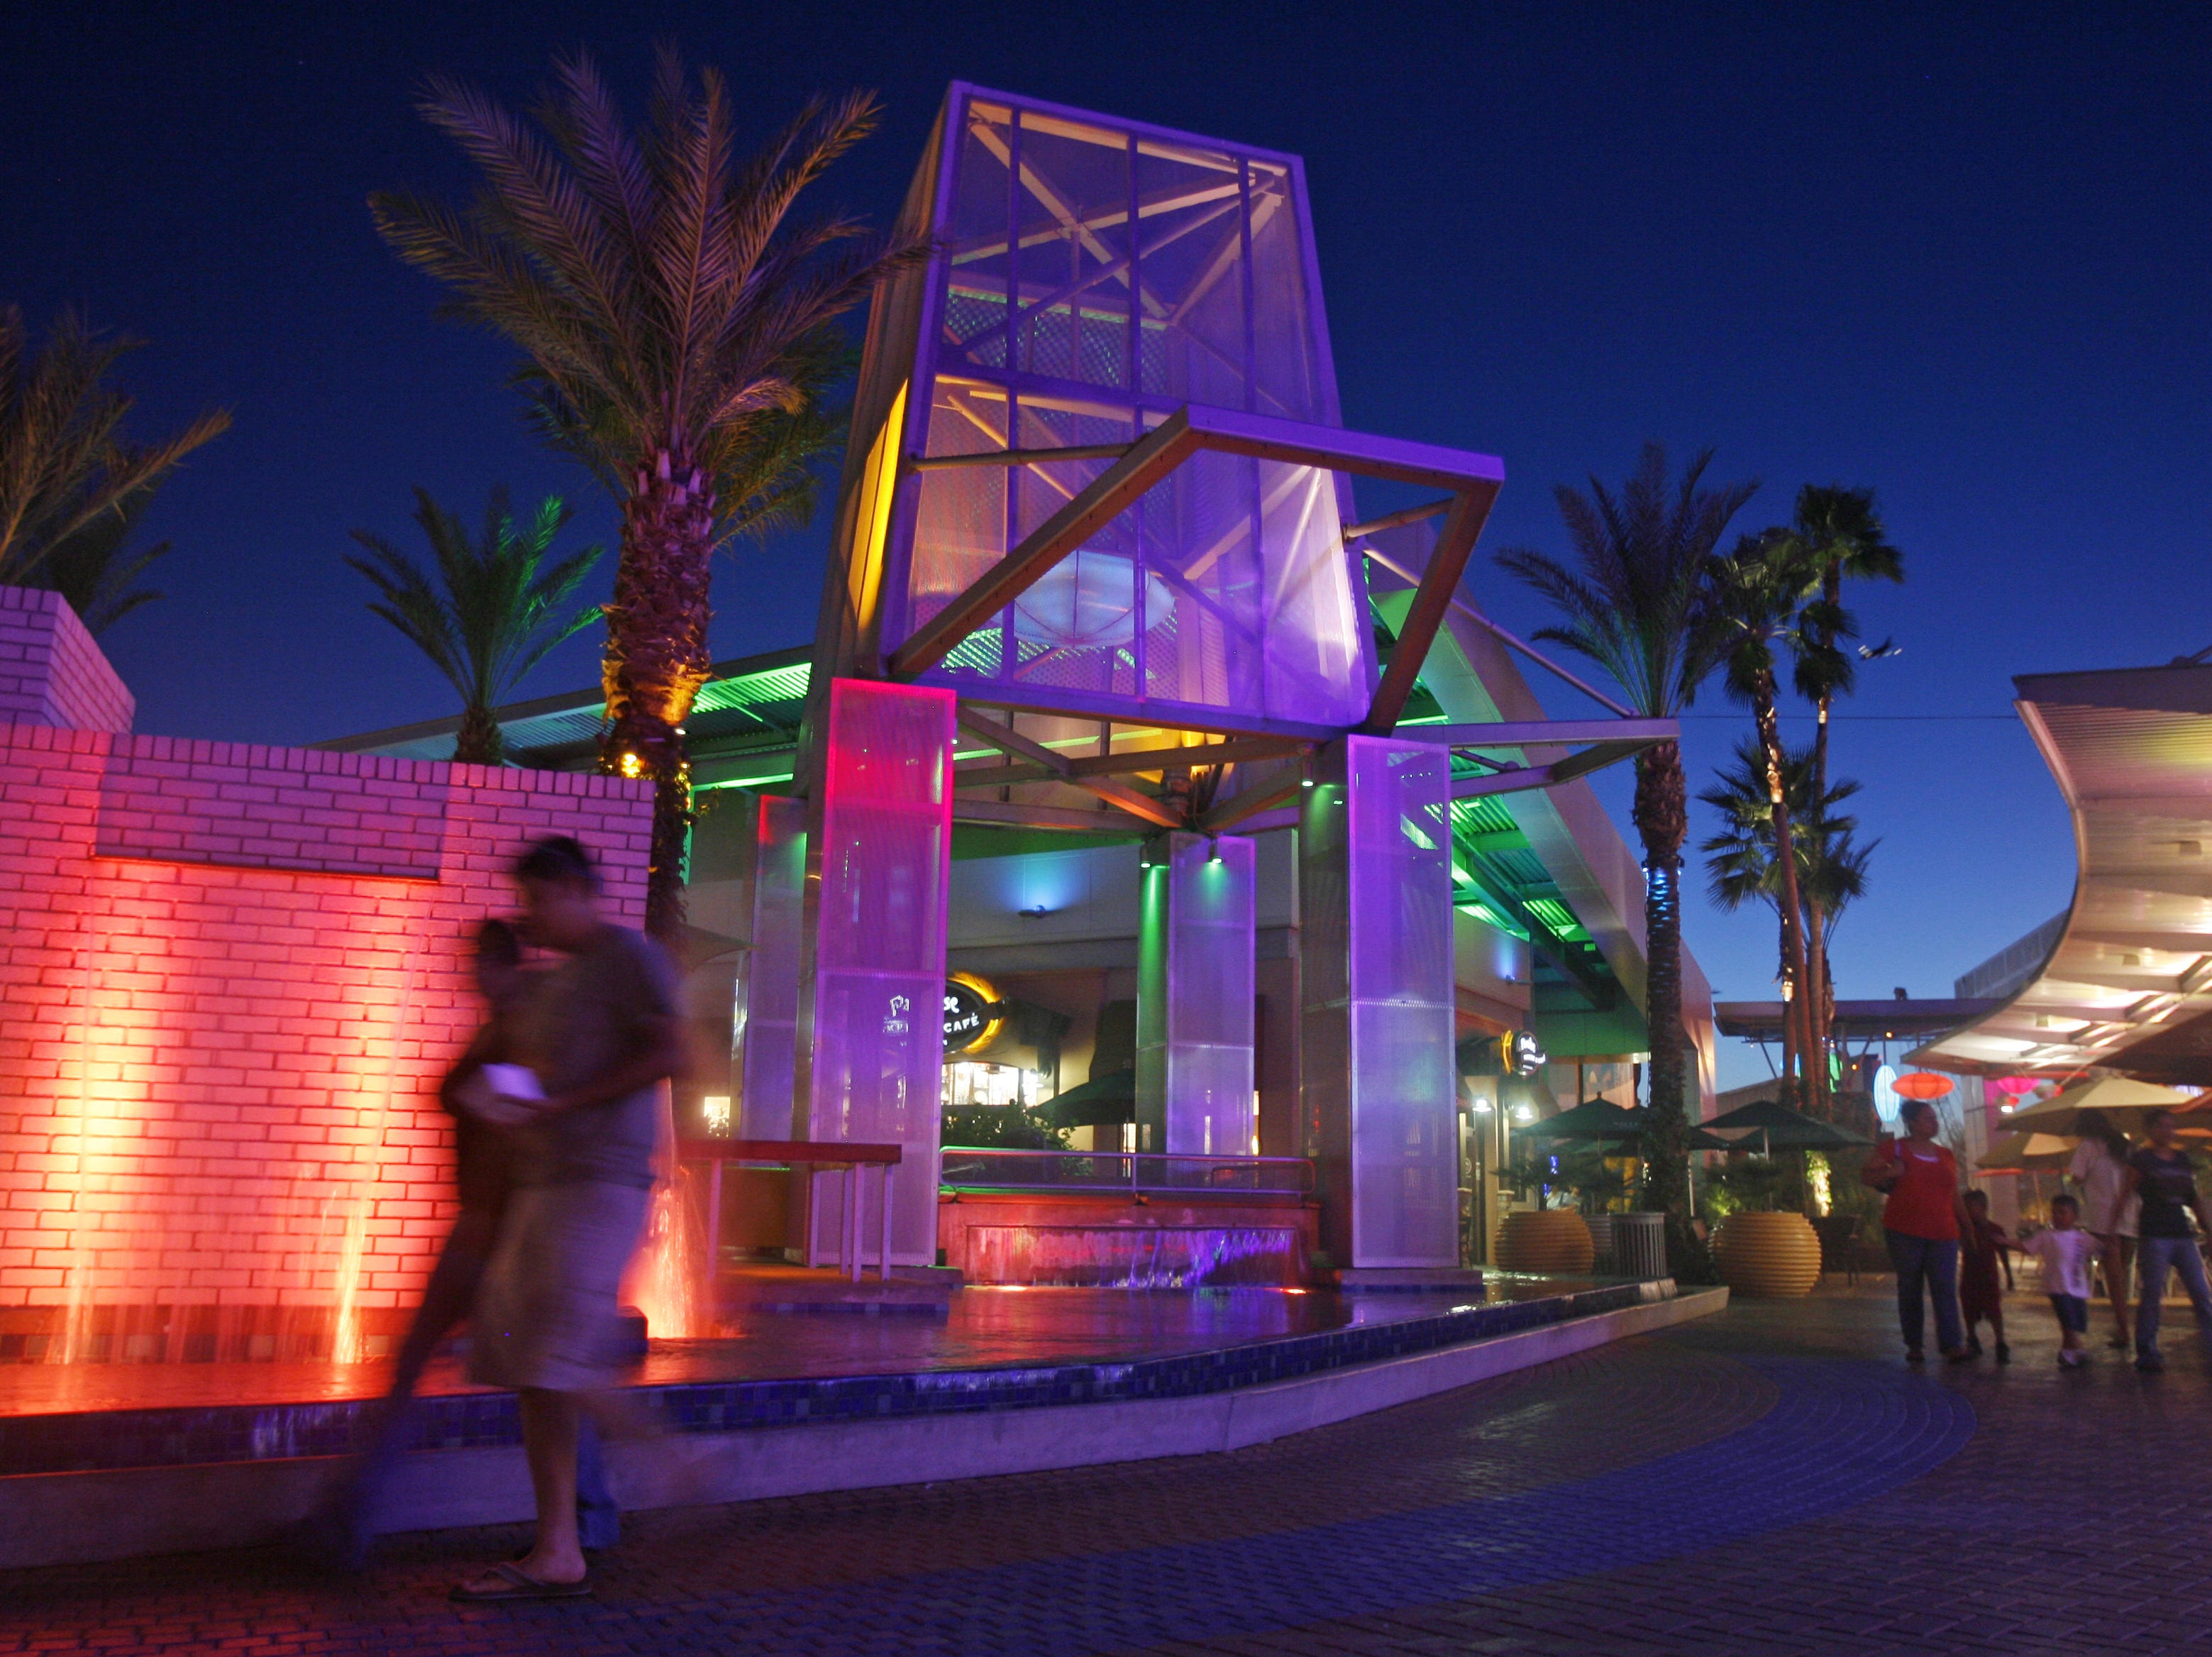 TEMPE MARKETPLACE: Several restaurants are offering spring training deals. A sample:Auntie Anne's (20 percent off your purchase); Bar Louie, Thirsty Lion and California Pizza Kitchen (20 percent off, excluding alcohol); Genghis Grill ($2 Bud Light drafts, $2 well drinks, $2 mimosas); Kabuki (15 percent off, excluding alcohol, sushi party platters or the sushi table);King's Fish House (free appetizer with a $25 purchase):Lucille's Smokehouse BBQ ($5 off a $20 purchase); Mojo Yogurt (25 percent off); Portillo's (buy one sandwich with a side and drink, get a free sandwich); The Keg Steakhouse + Bar (buyoneentree, get one free through March 31); Yogis Grill (get a free egg roll or sushi appetizer).